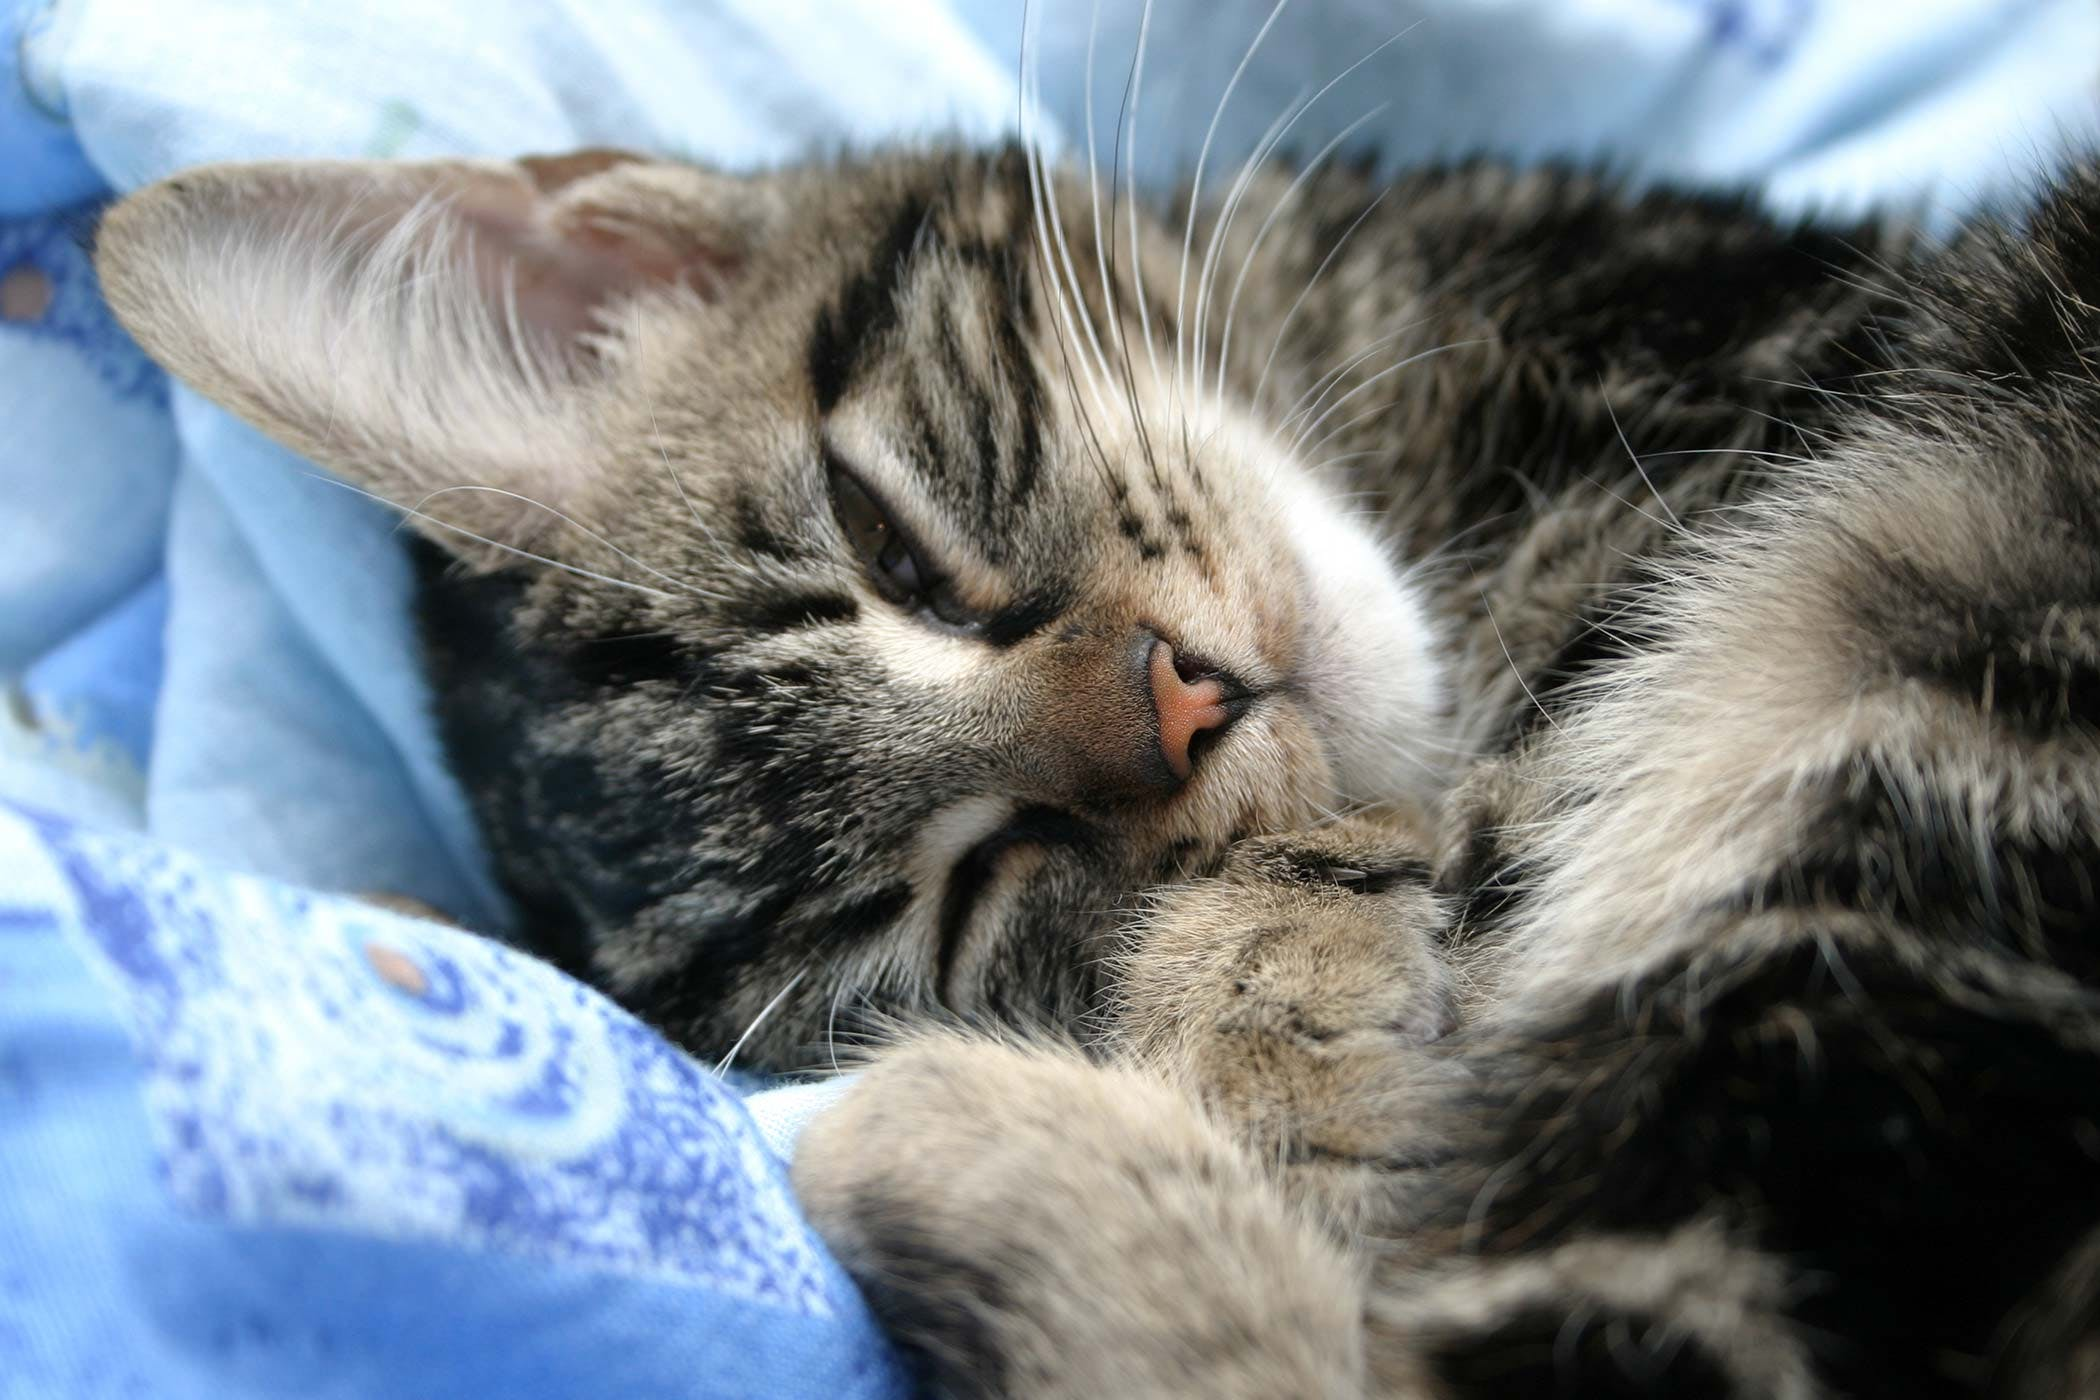 Excess Plasma Proteins in the Blood in Cats